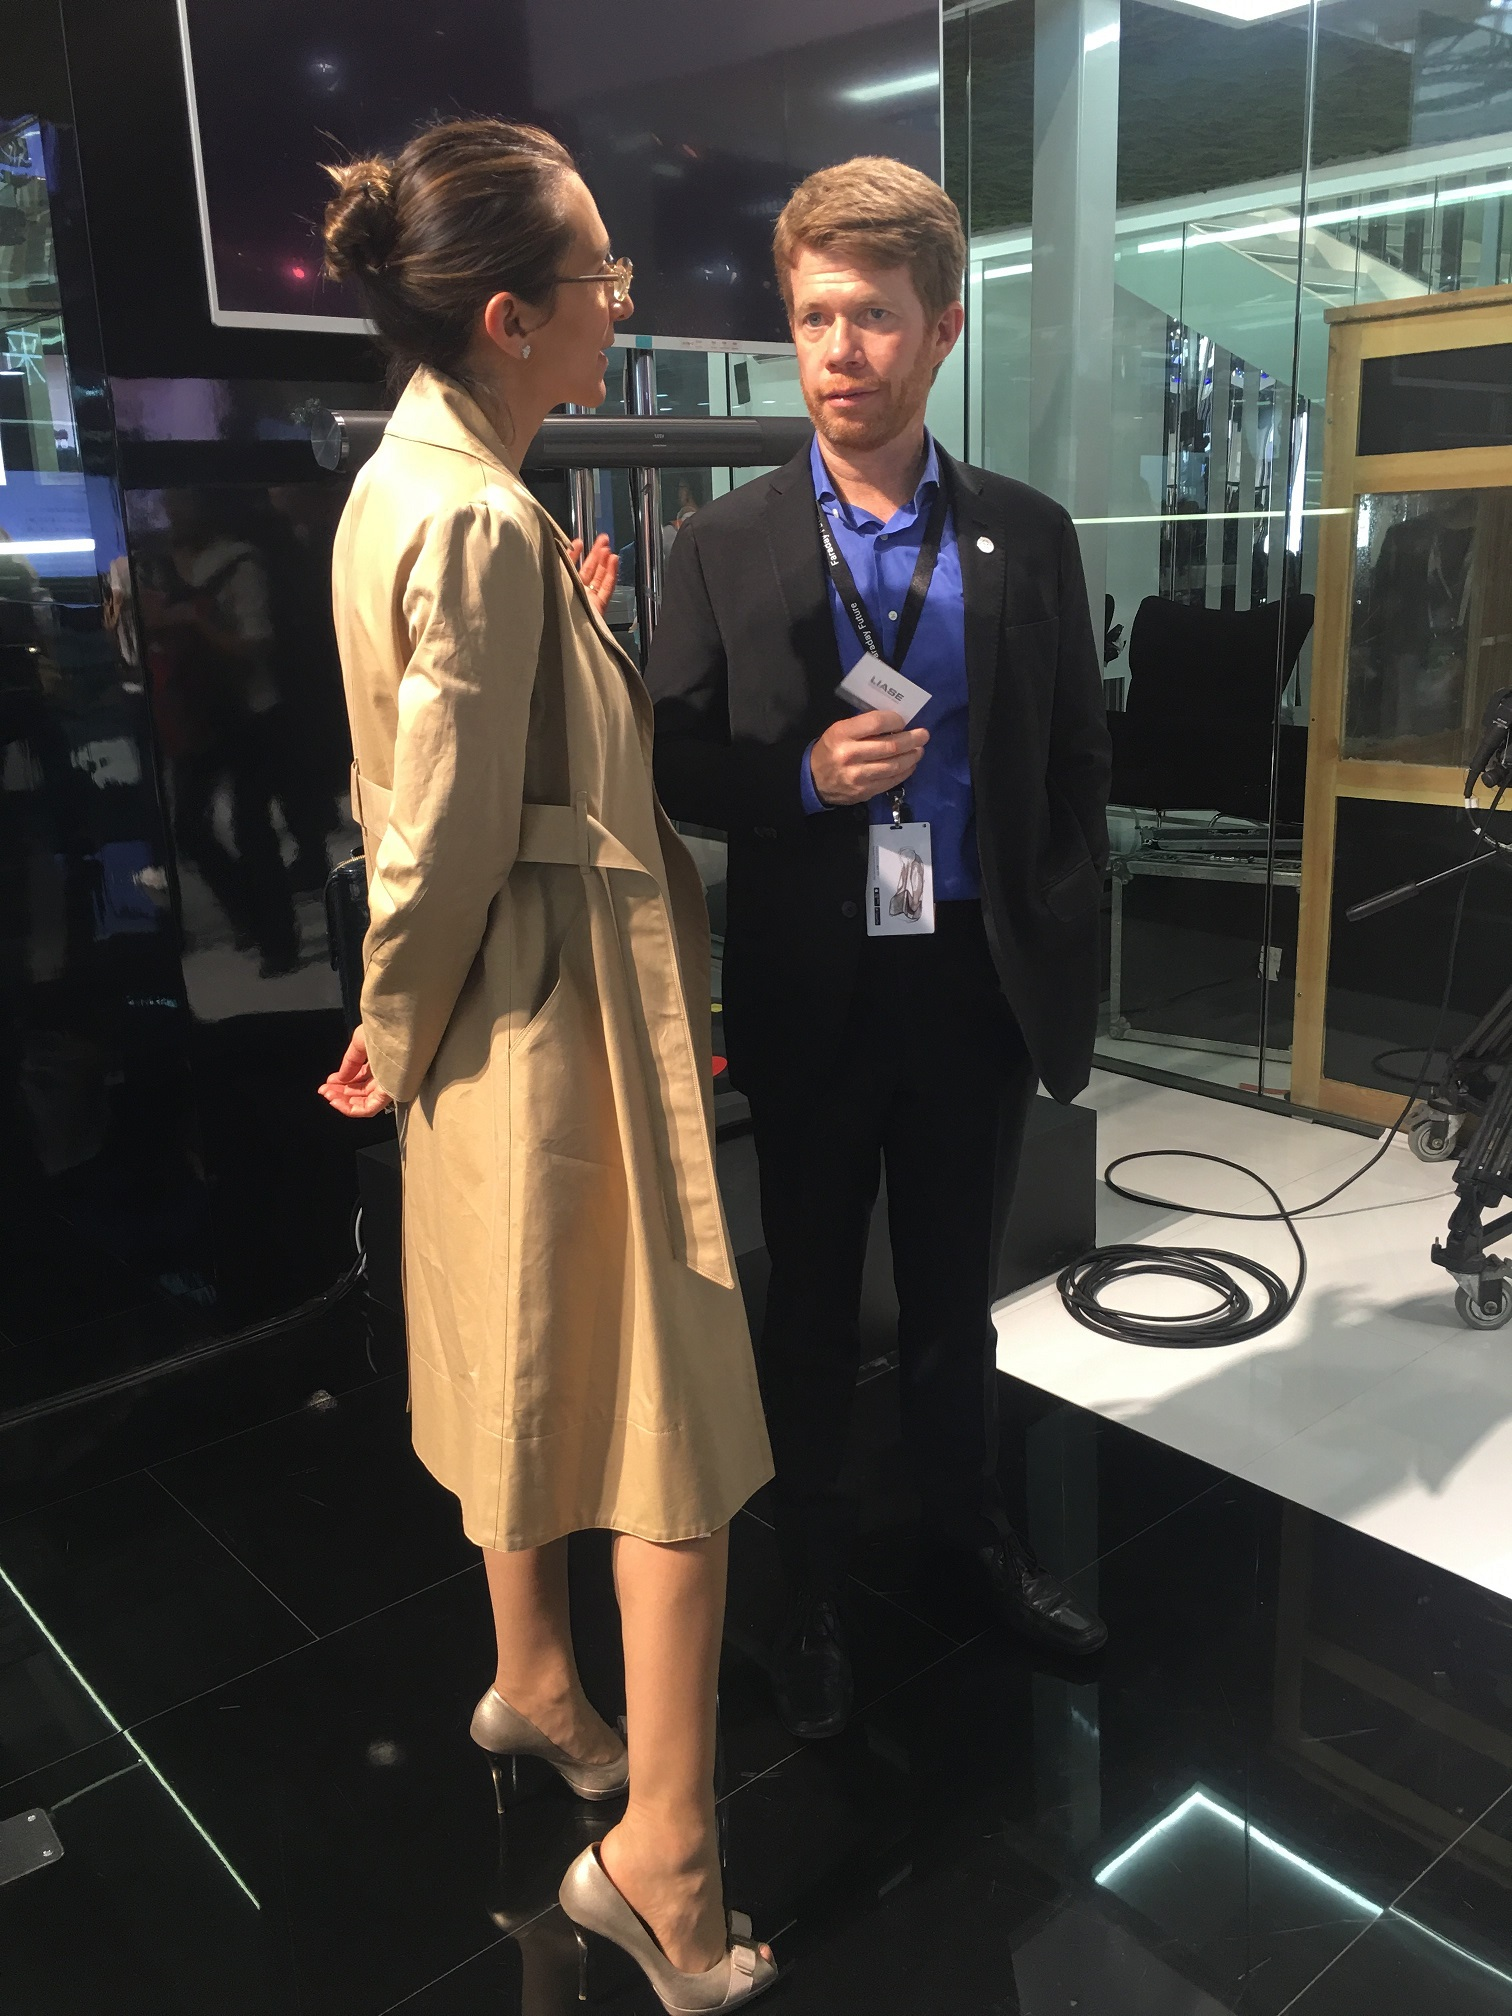 Vanessa Moriel and a Faraday Future Executive exchange ideas on the sidelines of the press day in Beijing.